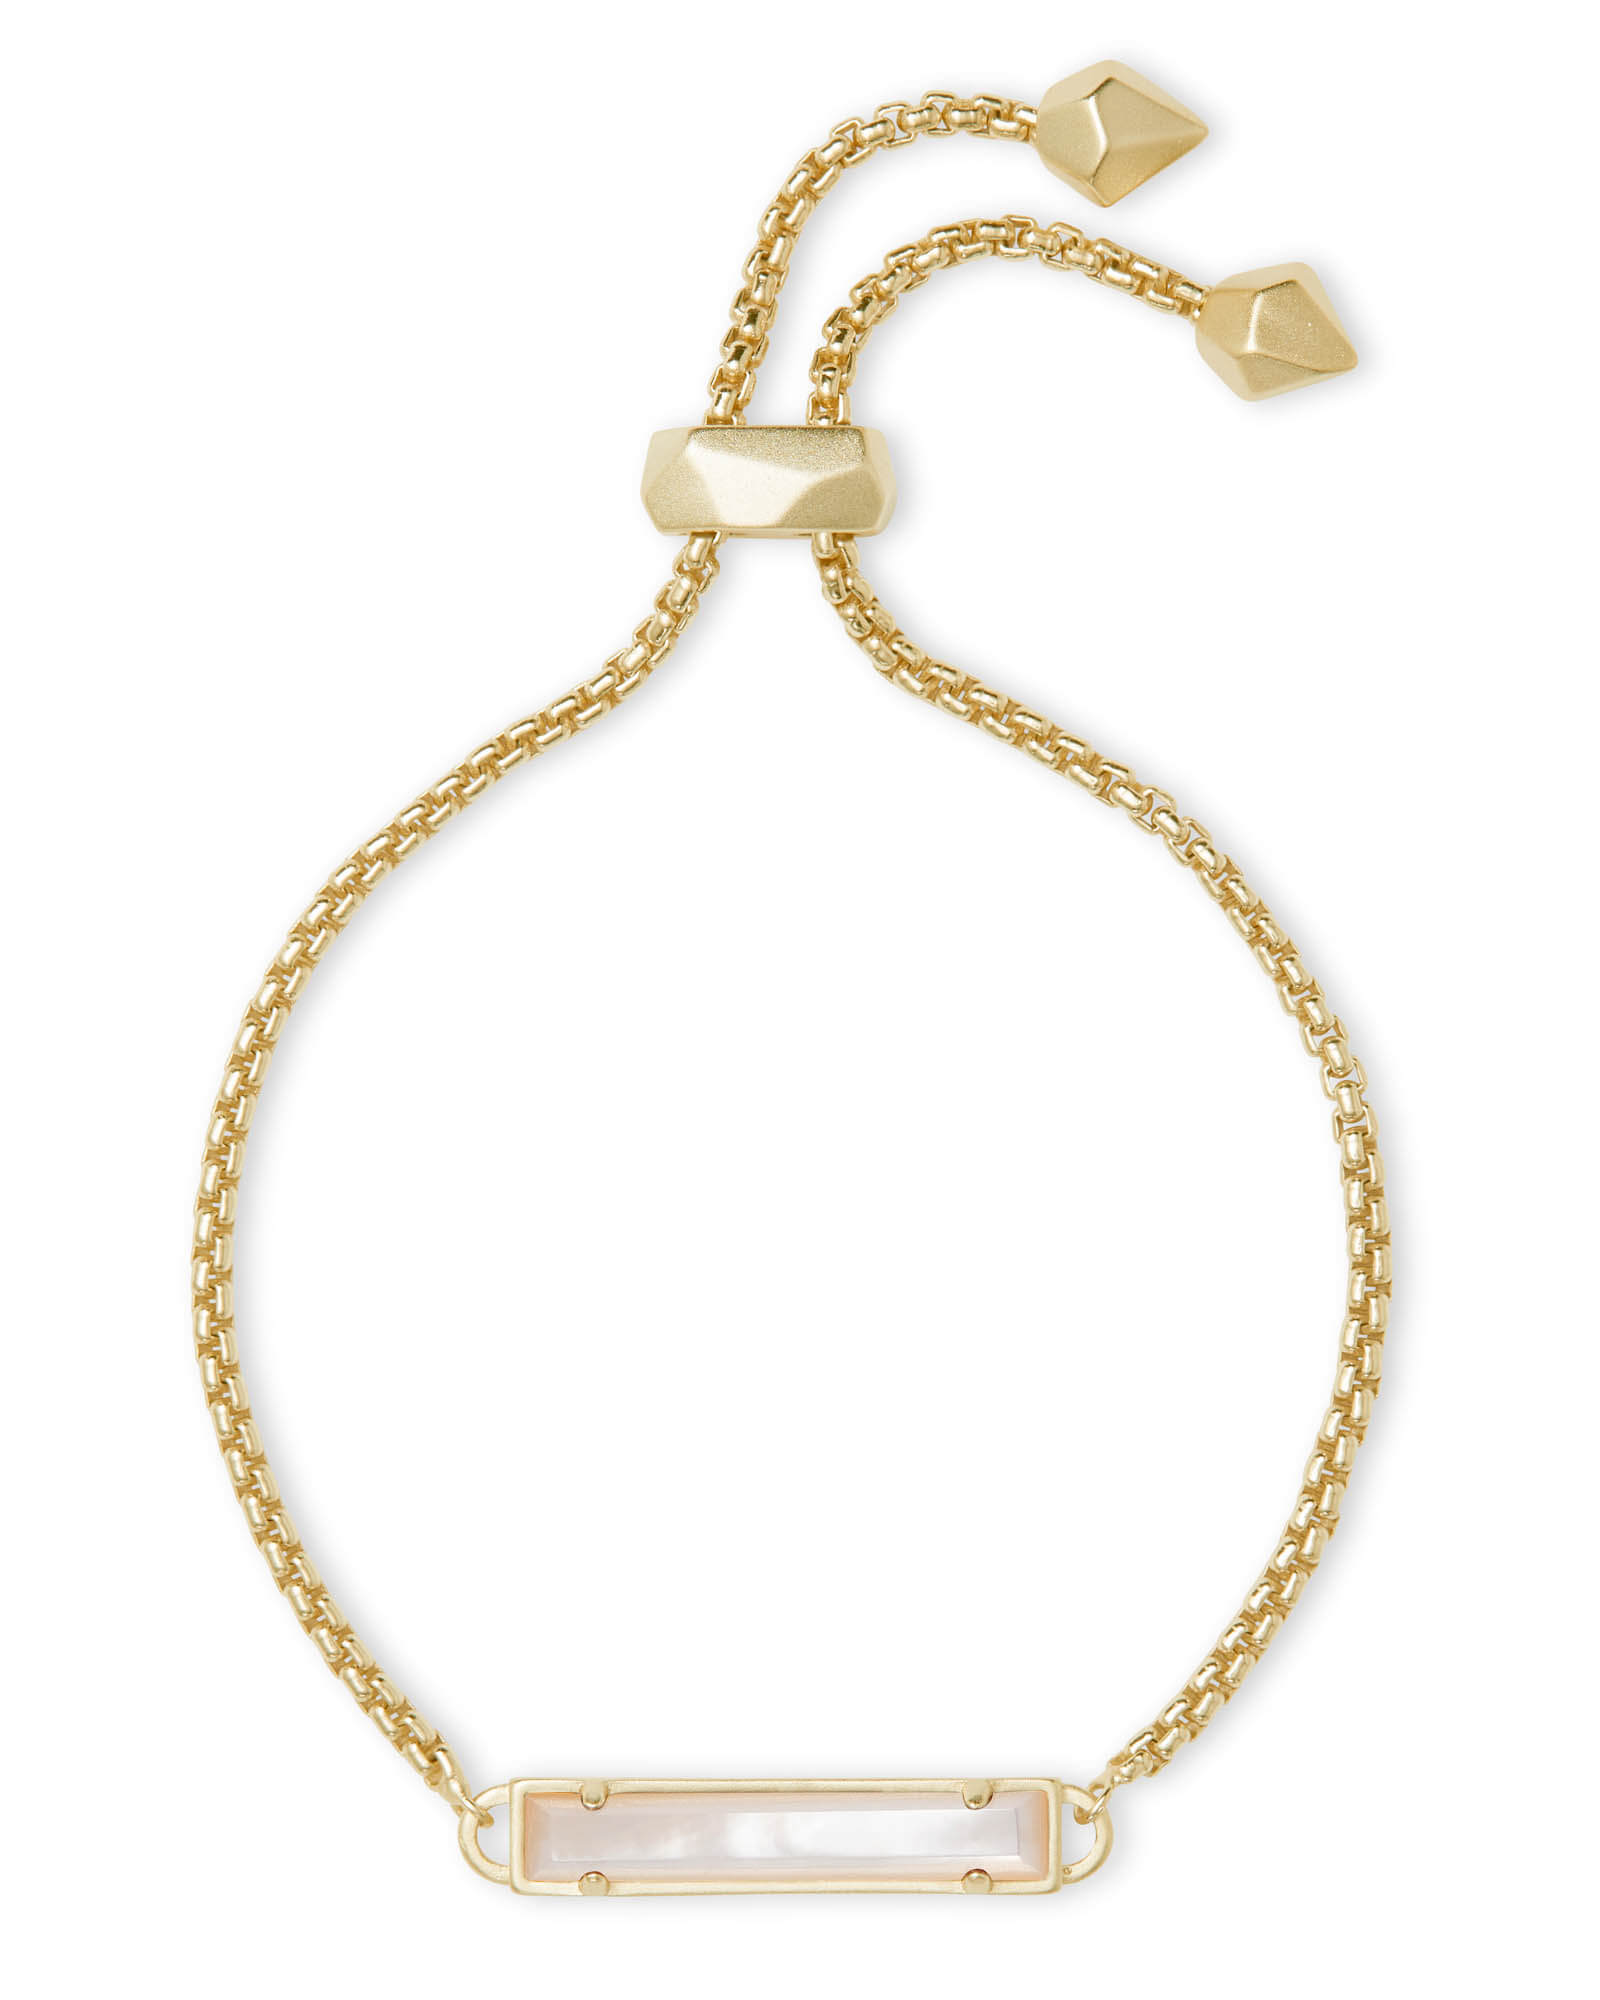 Stan Gold Adjustable Chain Bracelet in Ivory Pearl